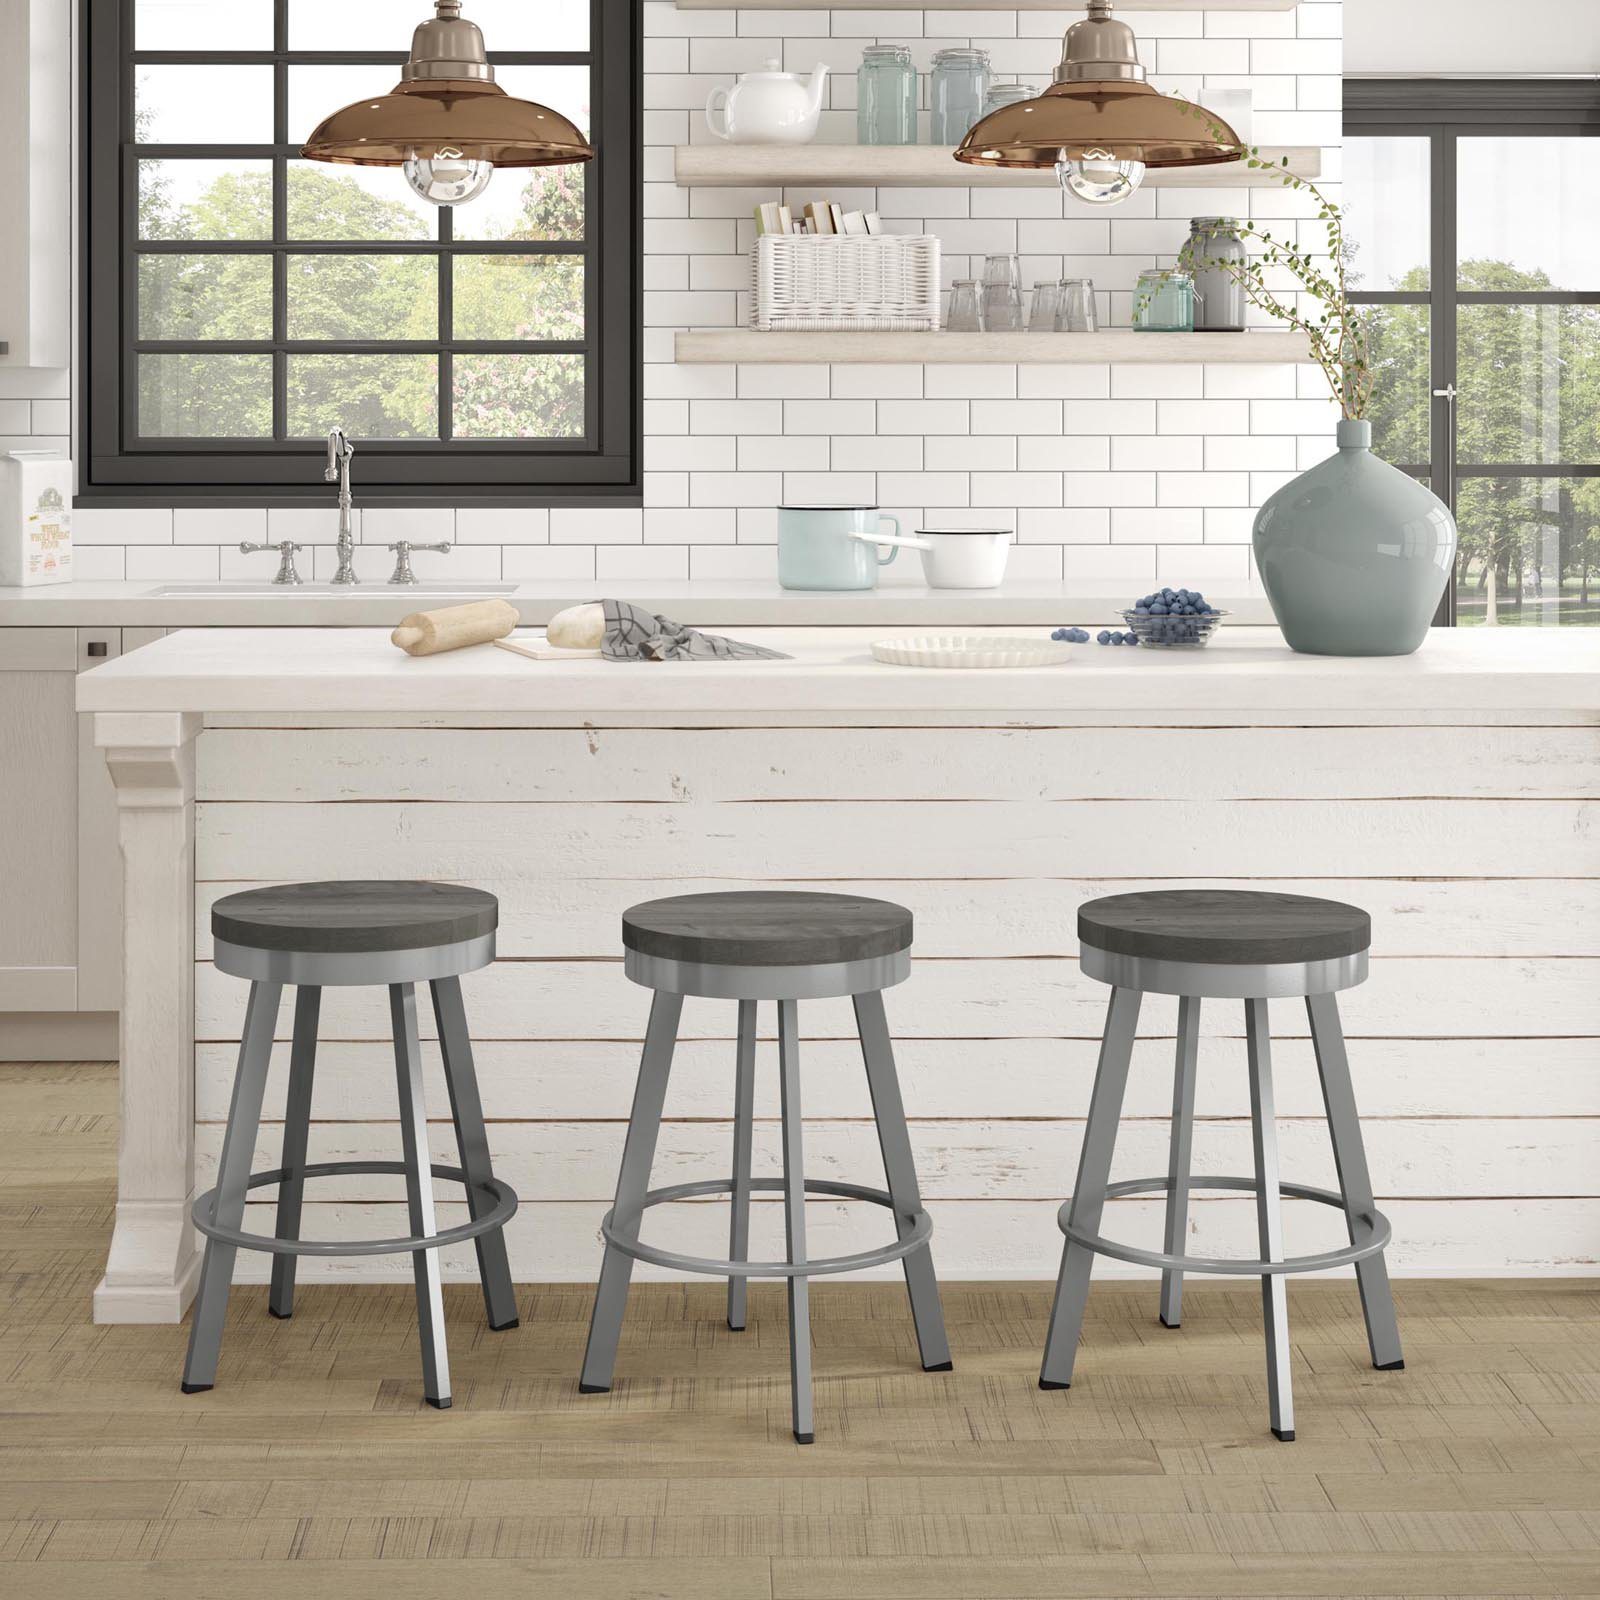 Amisco Warner 25 in. Swivel Counter Stool